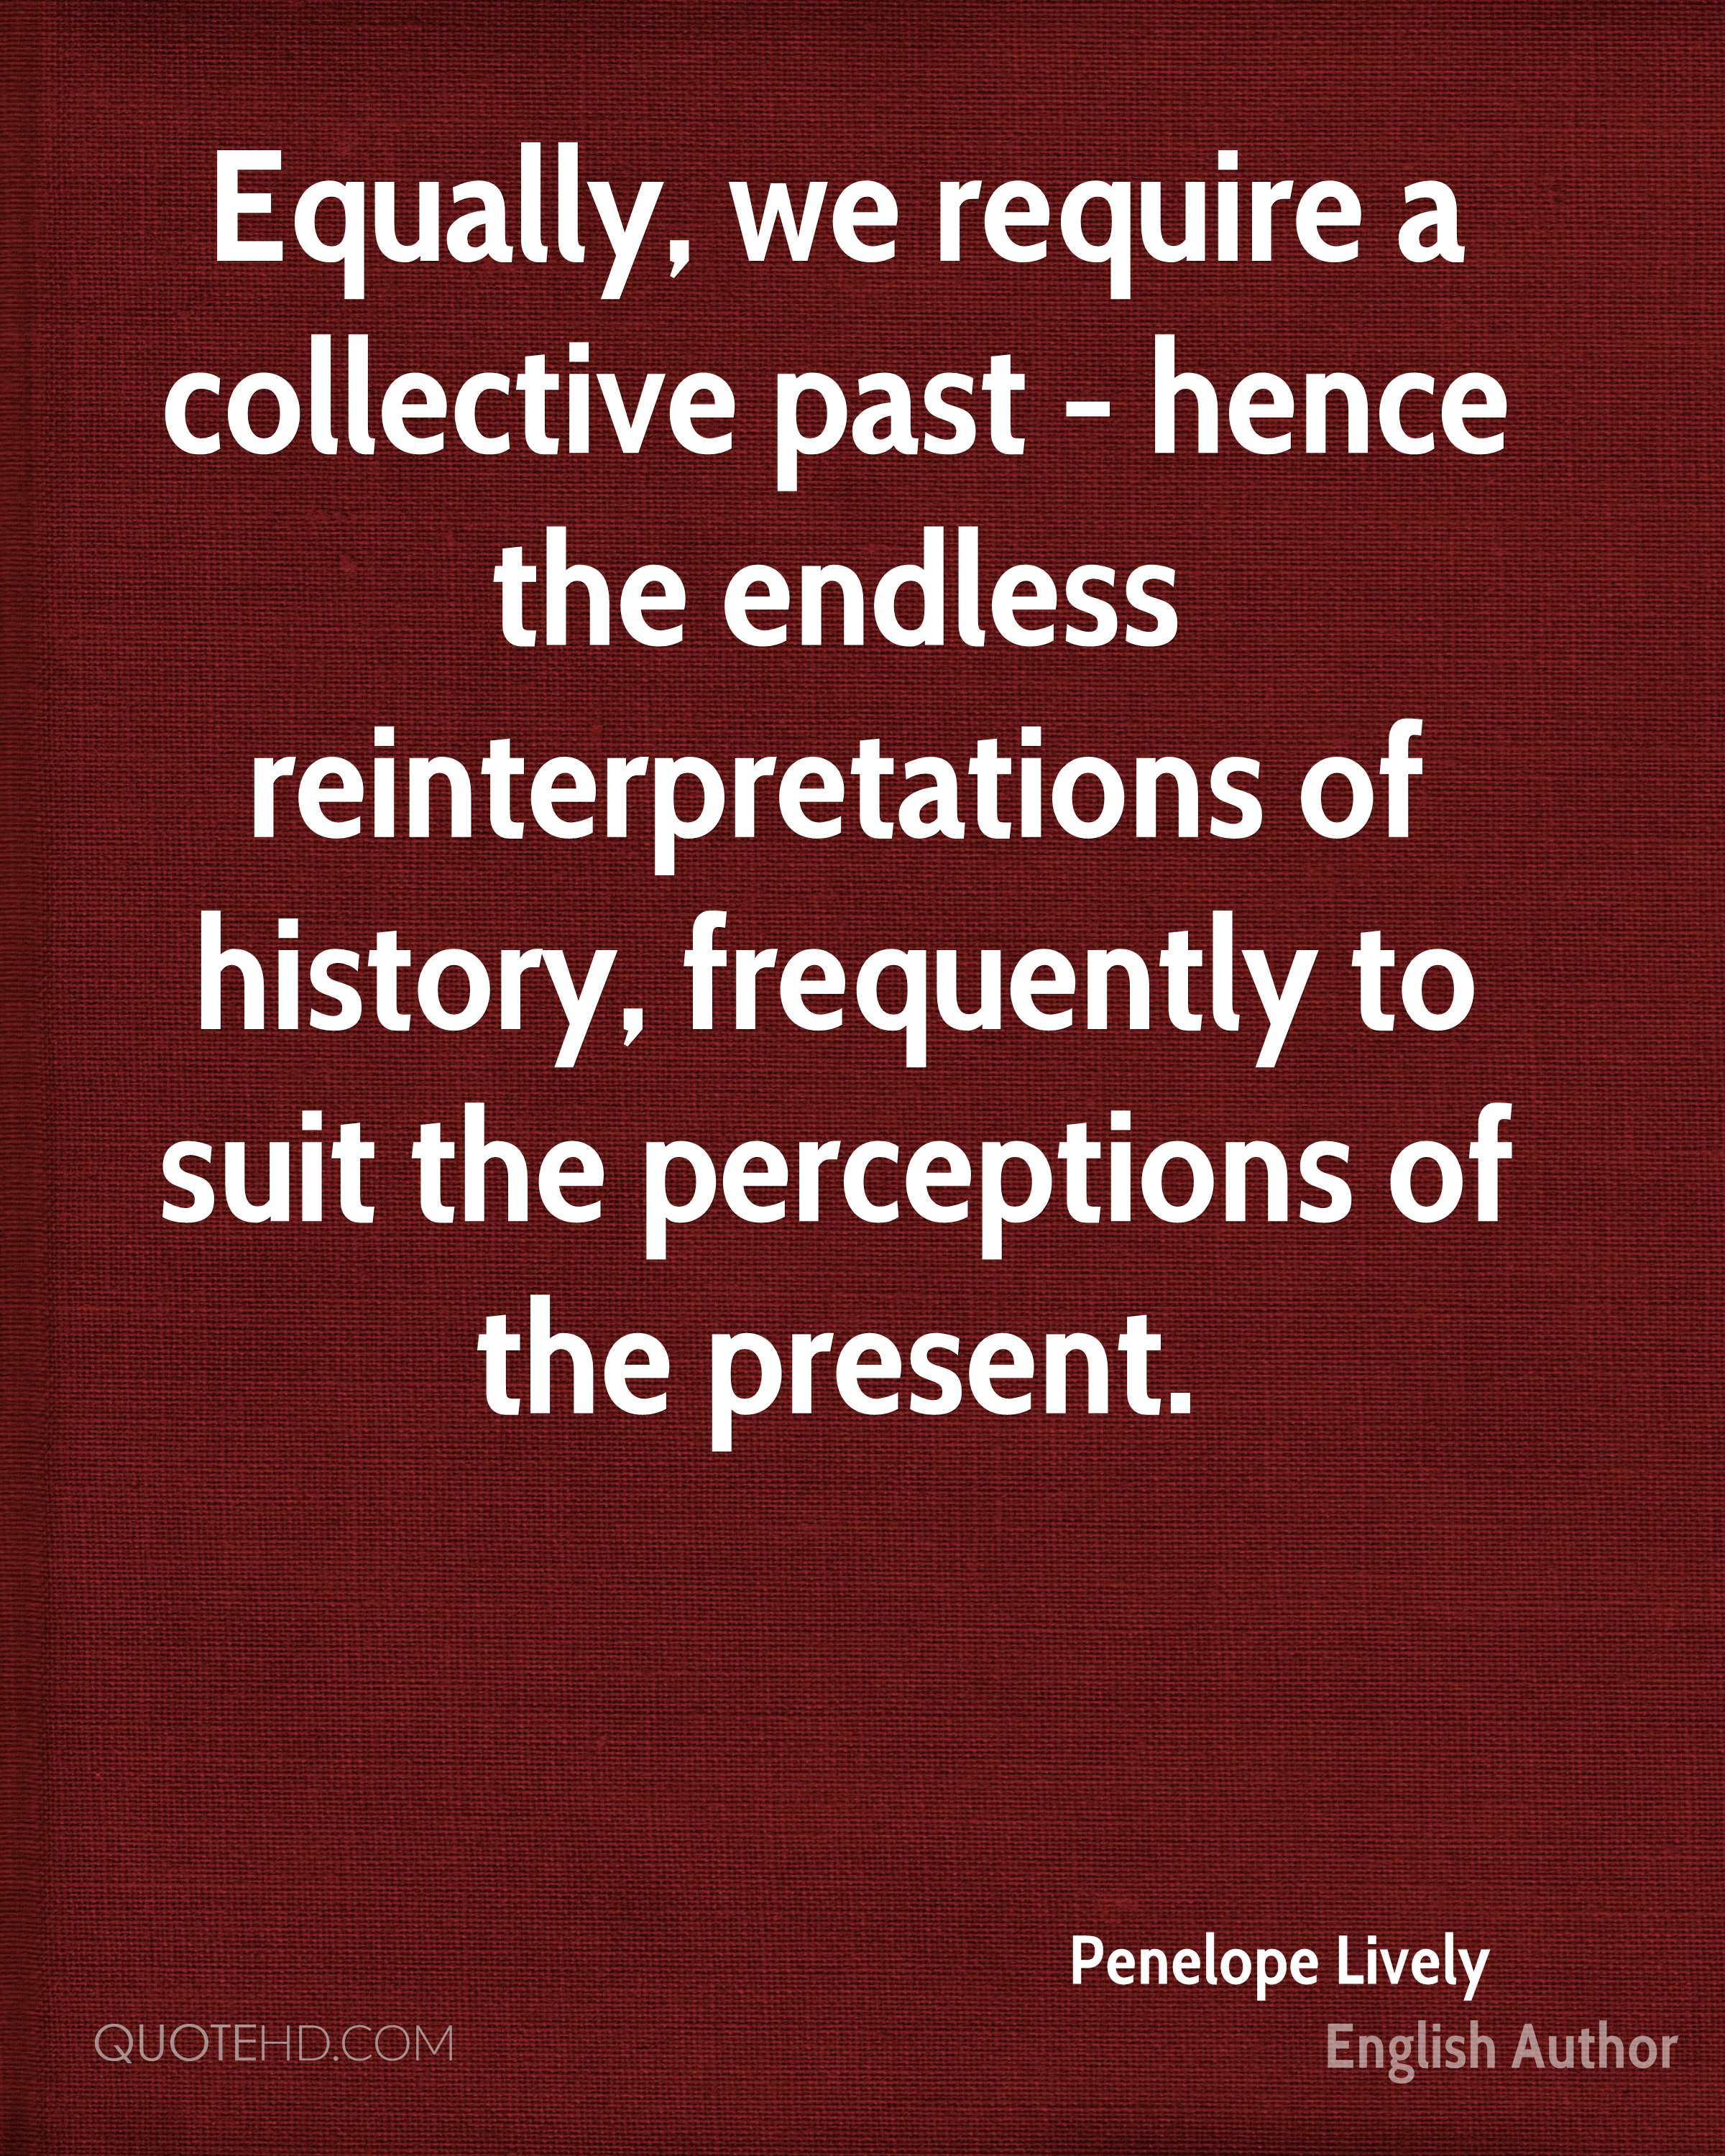 Equally, we require a collective past - hence the endless reinterpretations of history, frequently to suit the perceptions of the present.